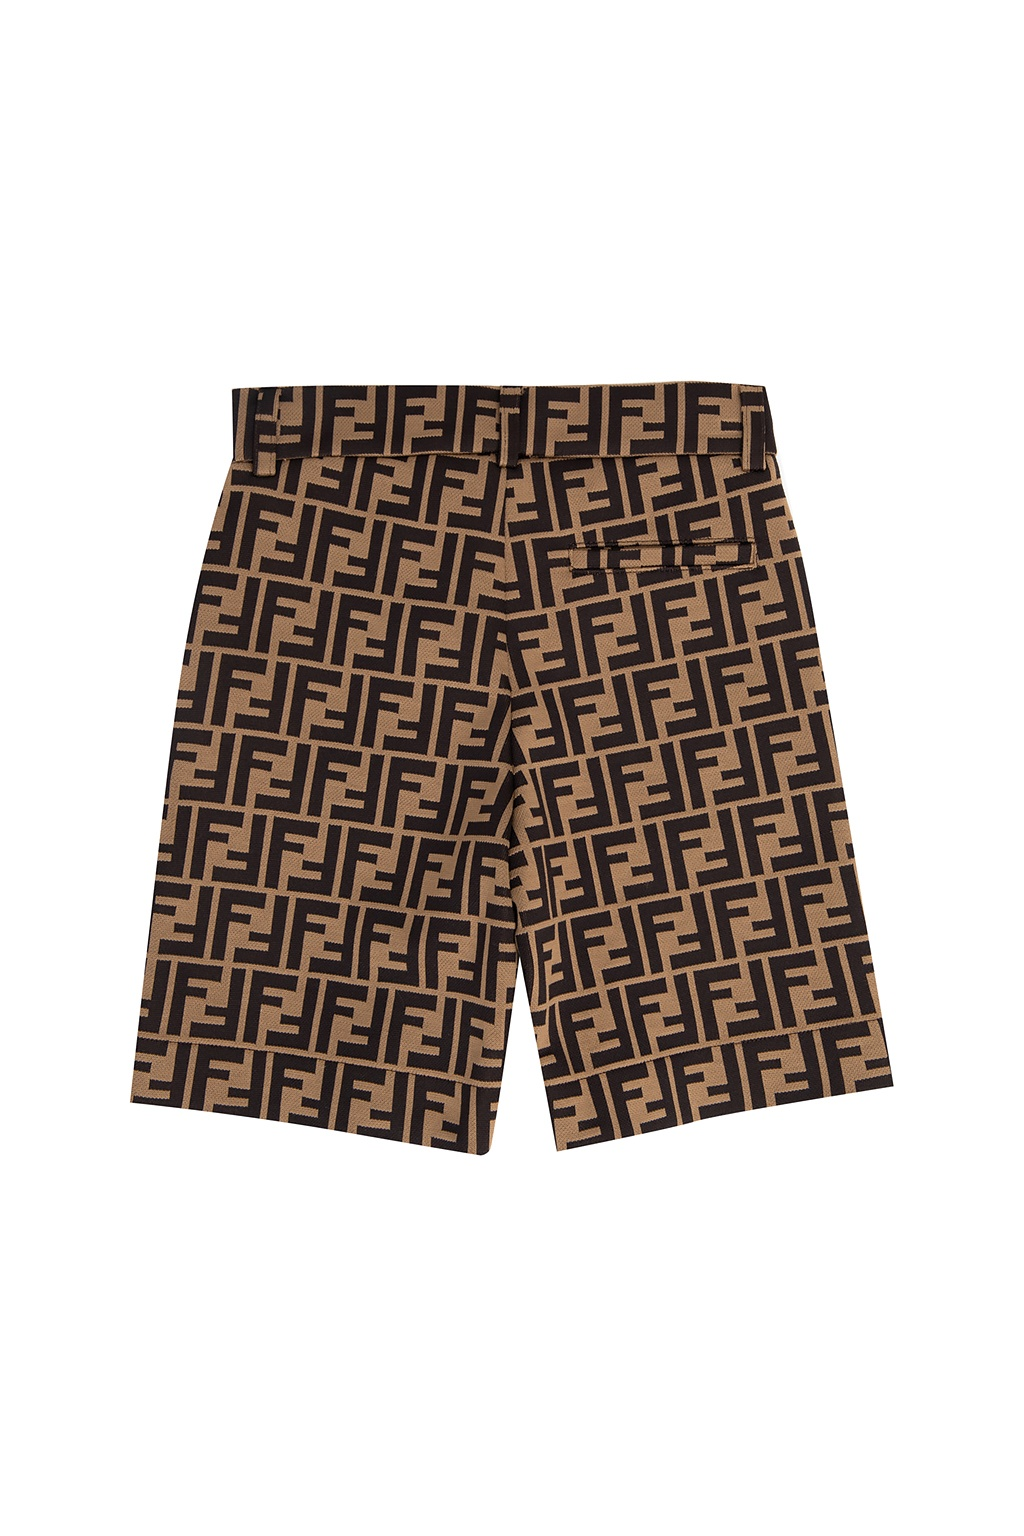 Fendi Kids Shorts with logo